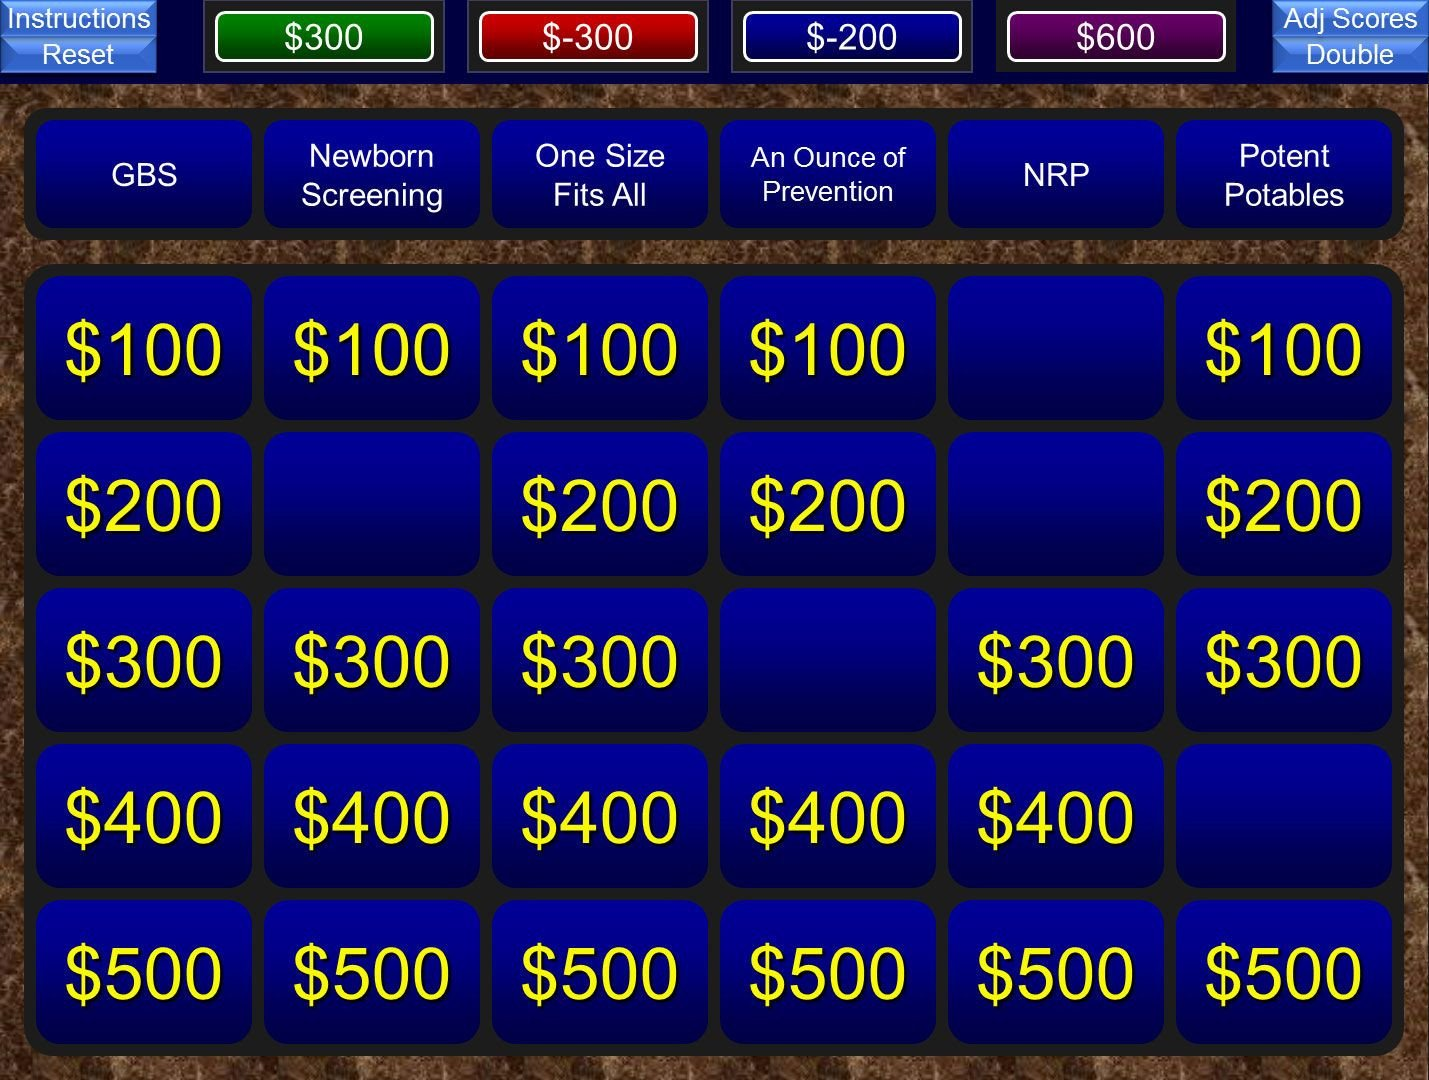 Jeopardy Powerpoint Template with Score A Free Powerpoint Jeopardy Template for the Classroom